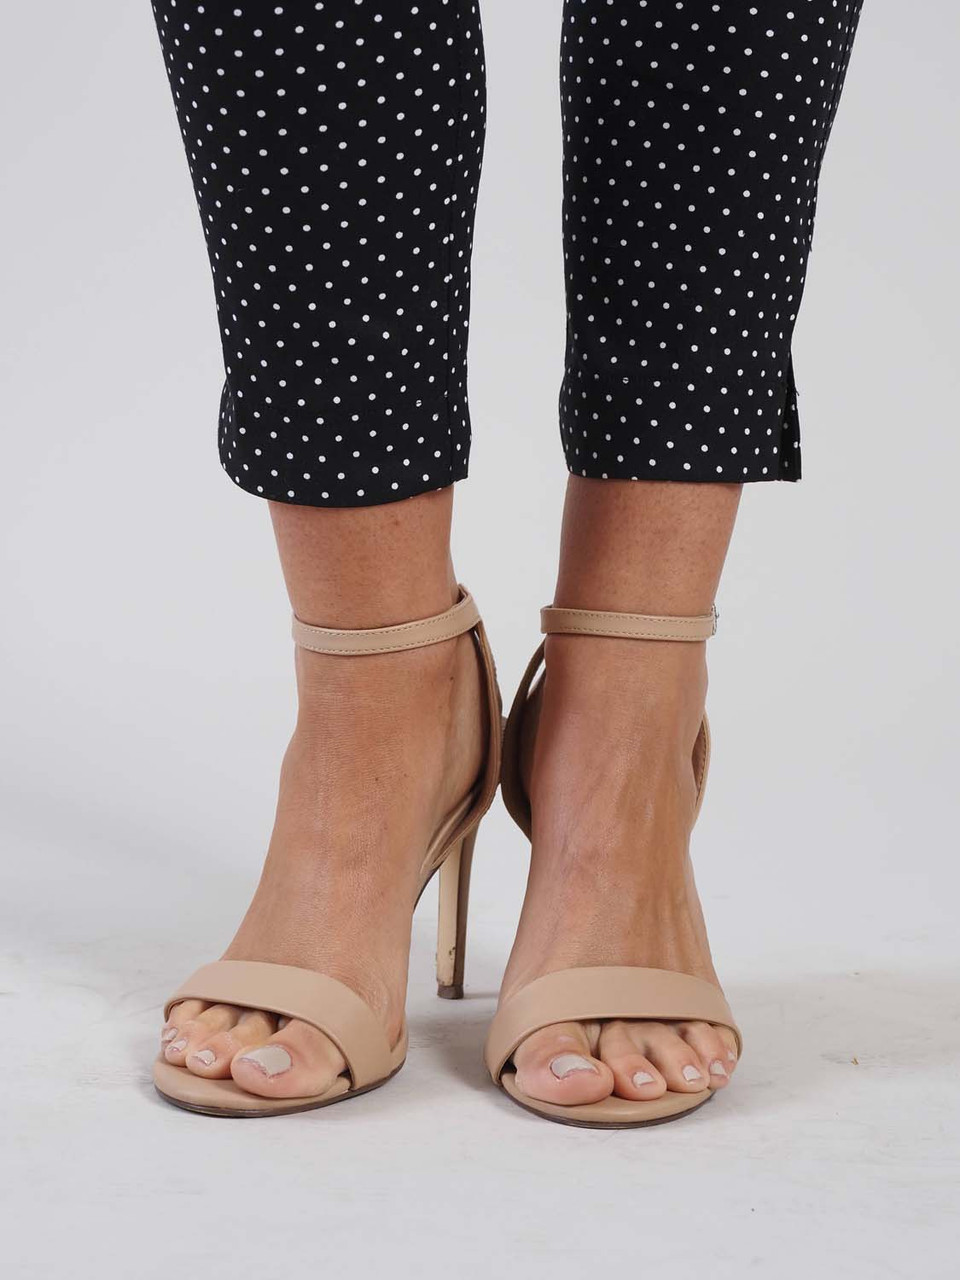 black and white polka dot stretch pant andre by unit